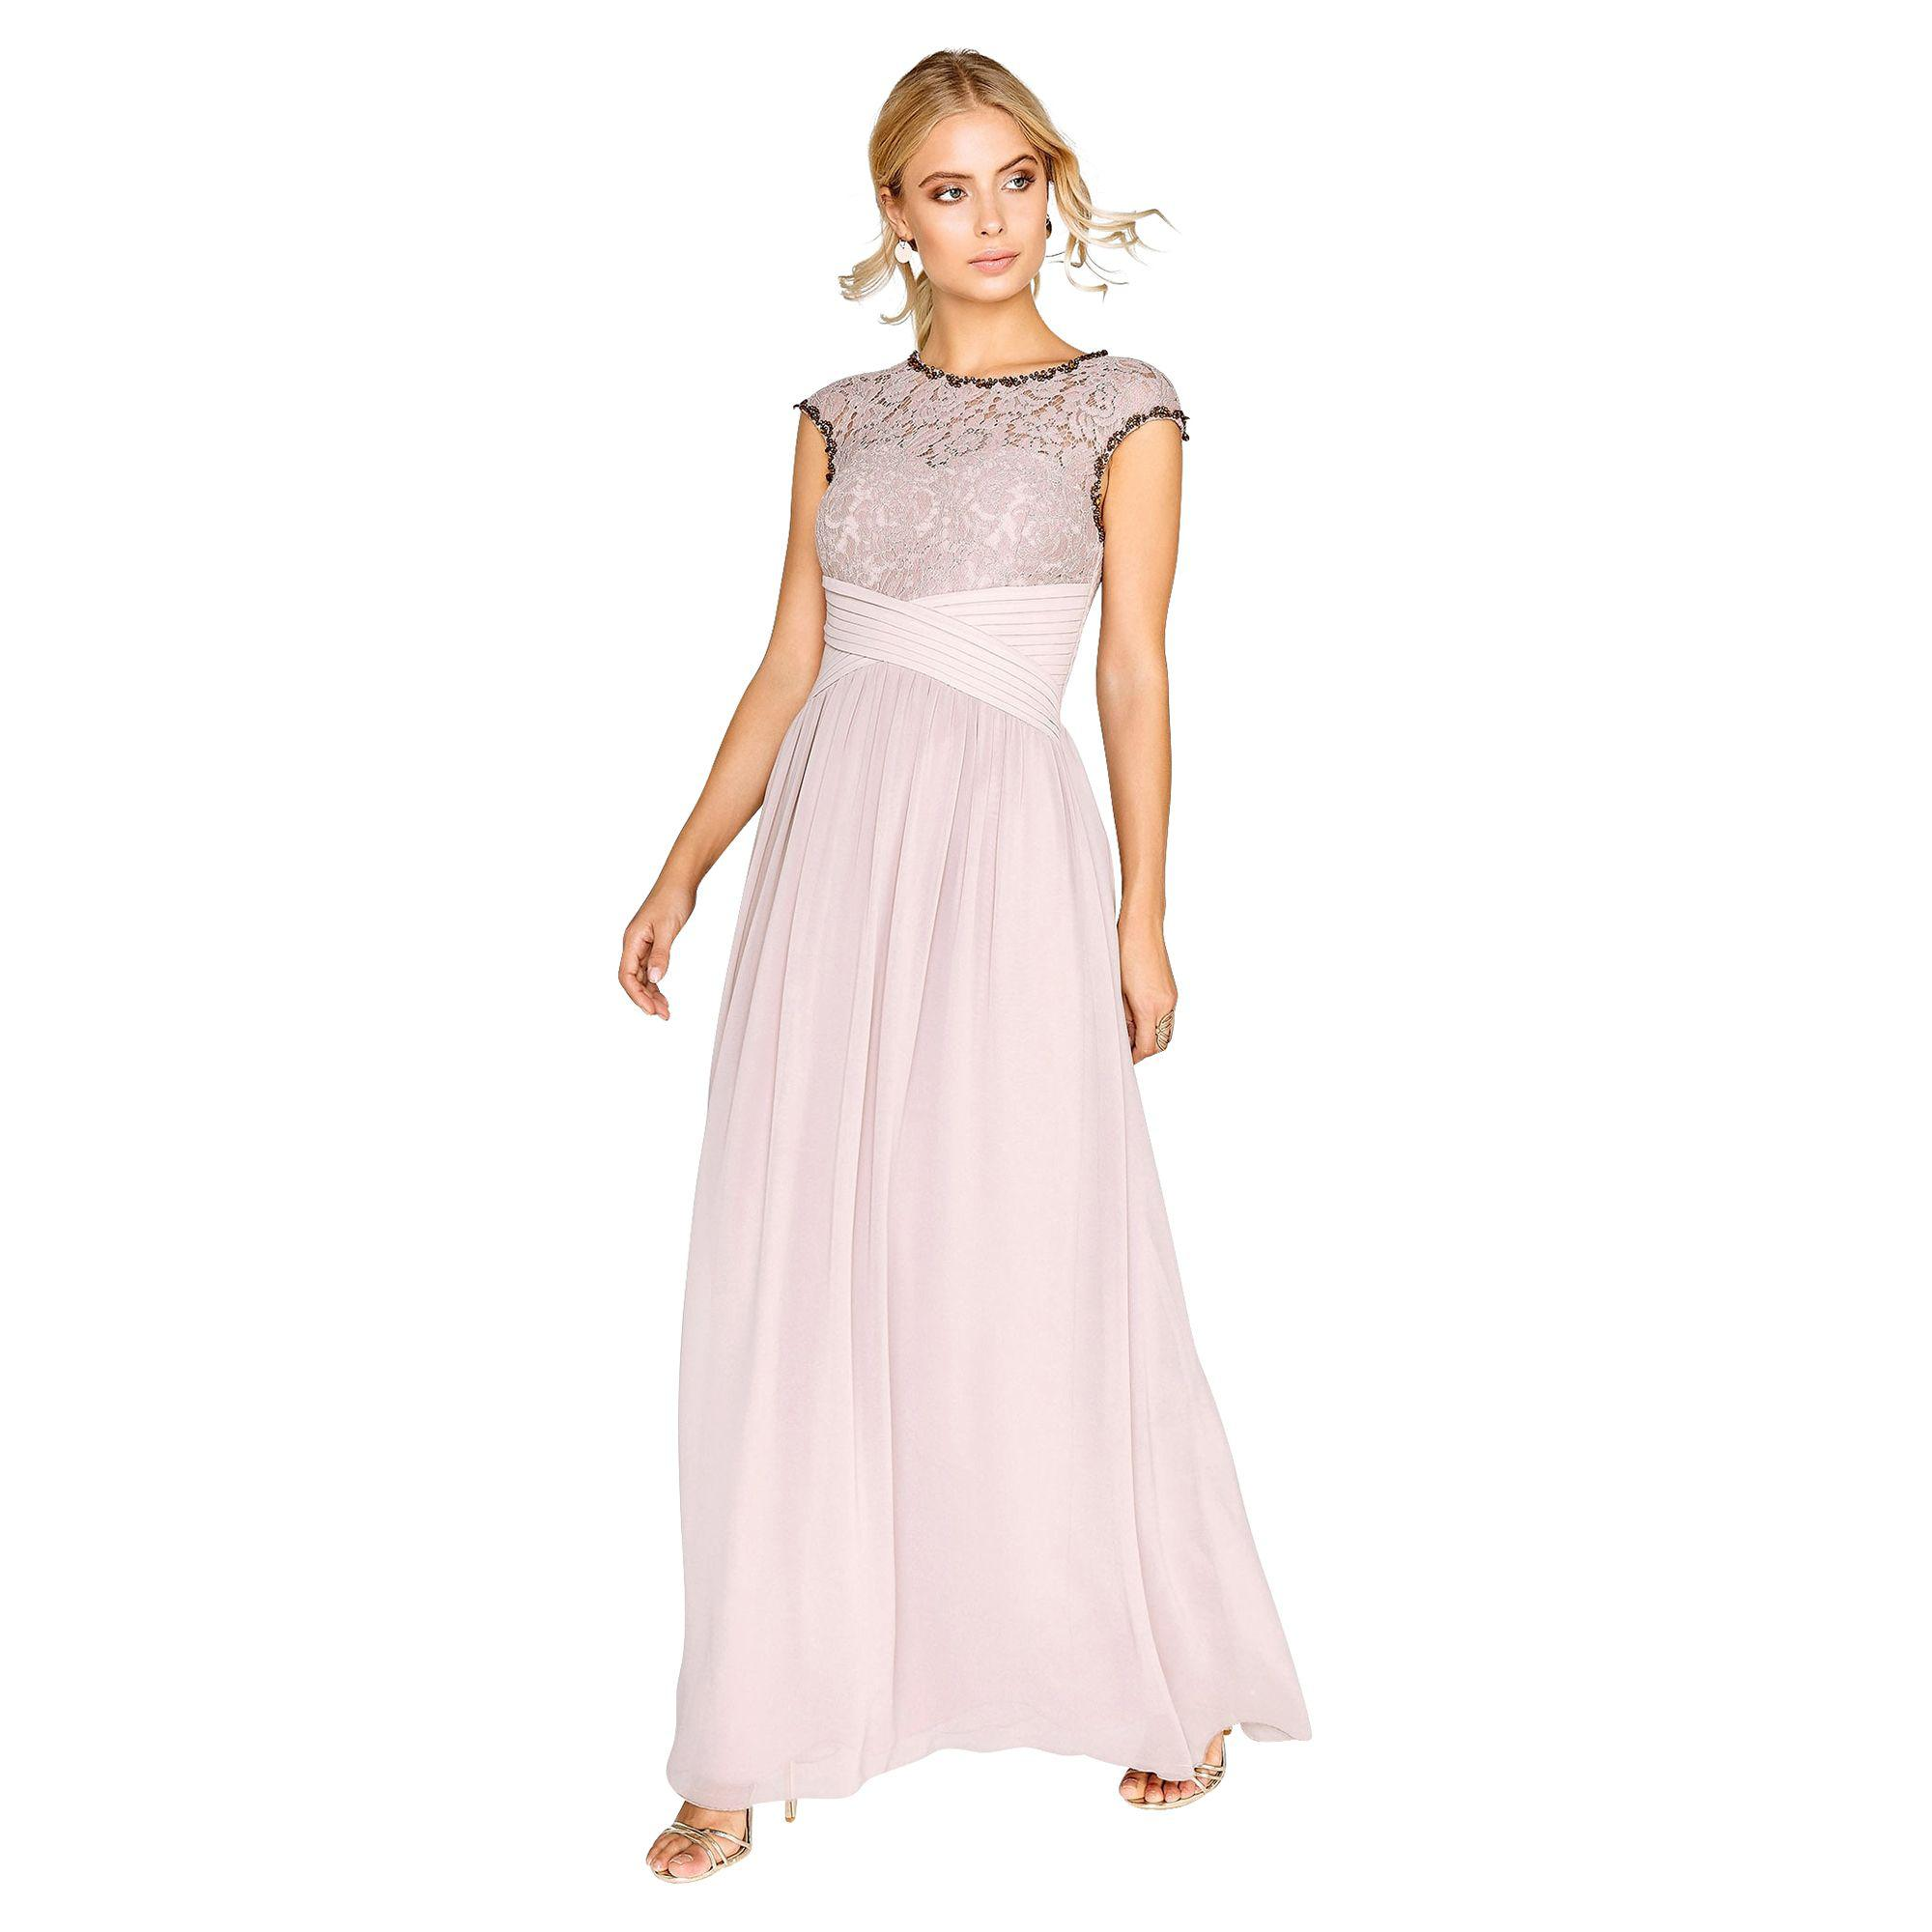 Little Mistress Mink Lace Bust Maxi Dress in Pink - Lyst 37adf4904